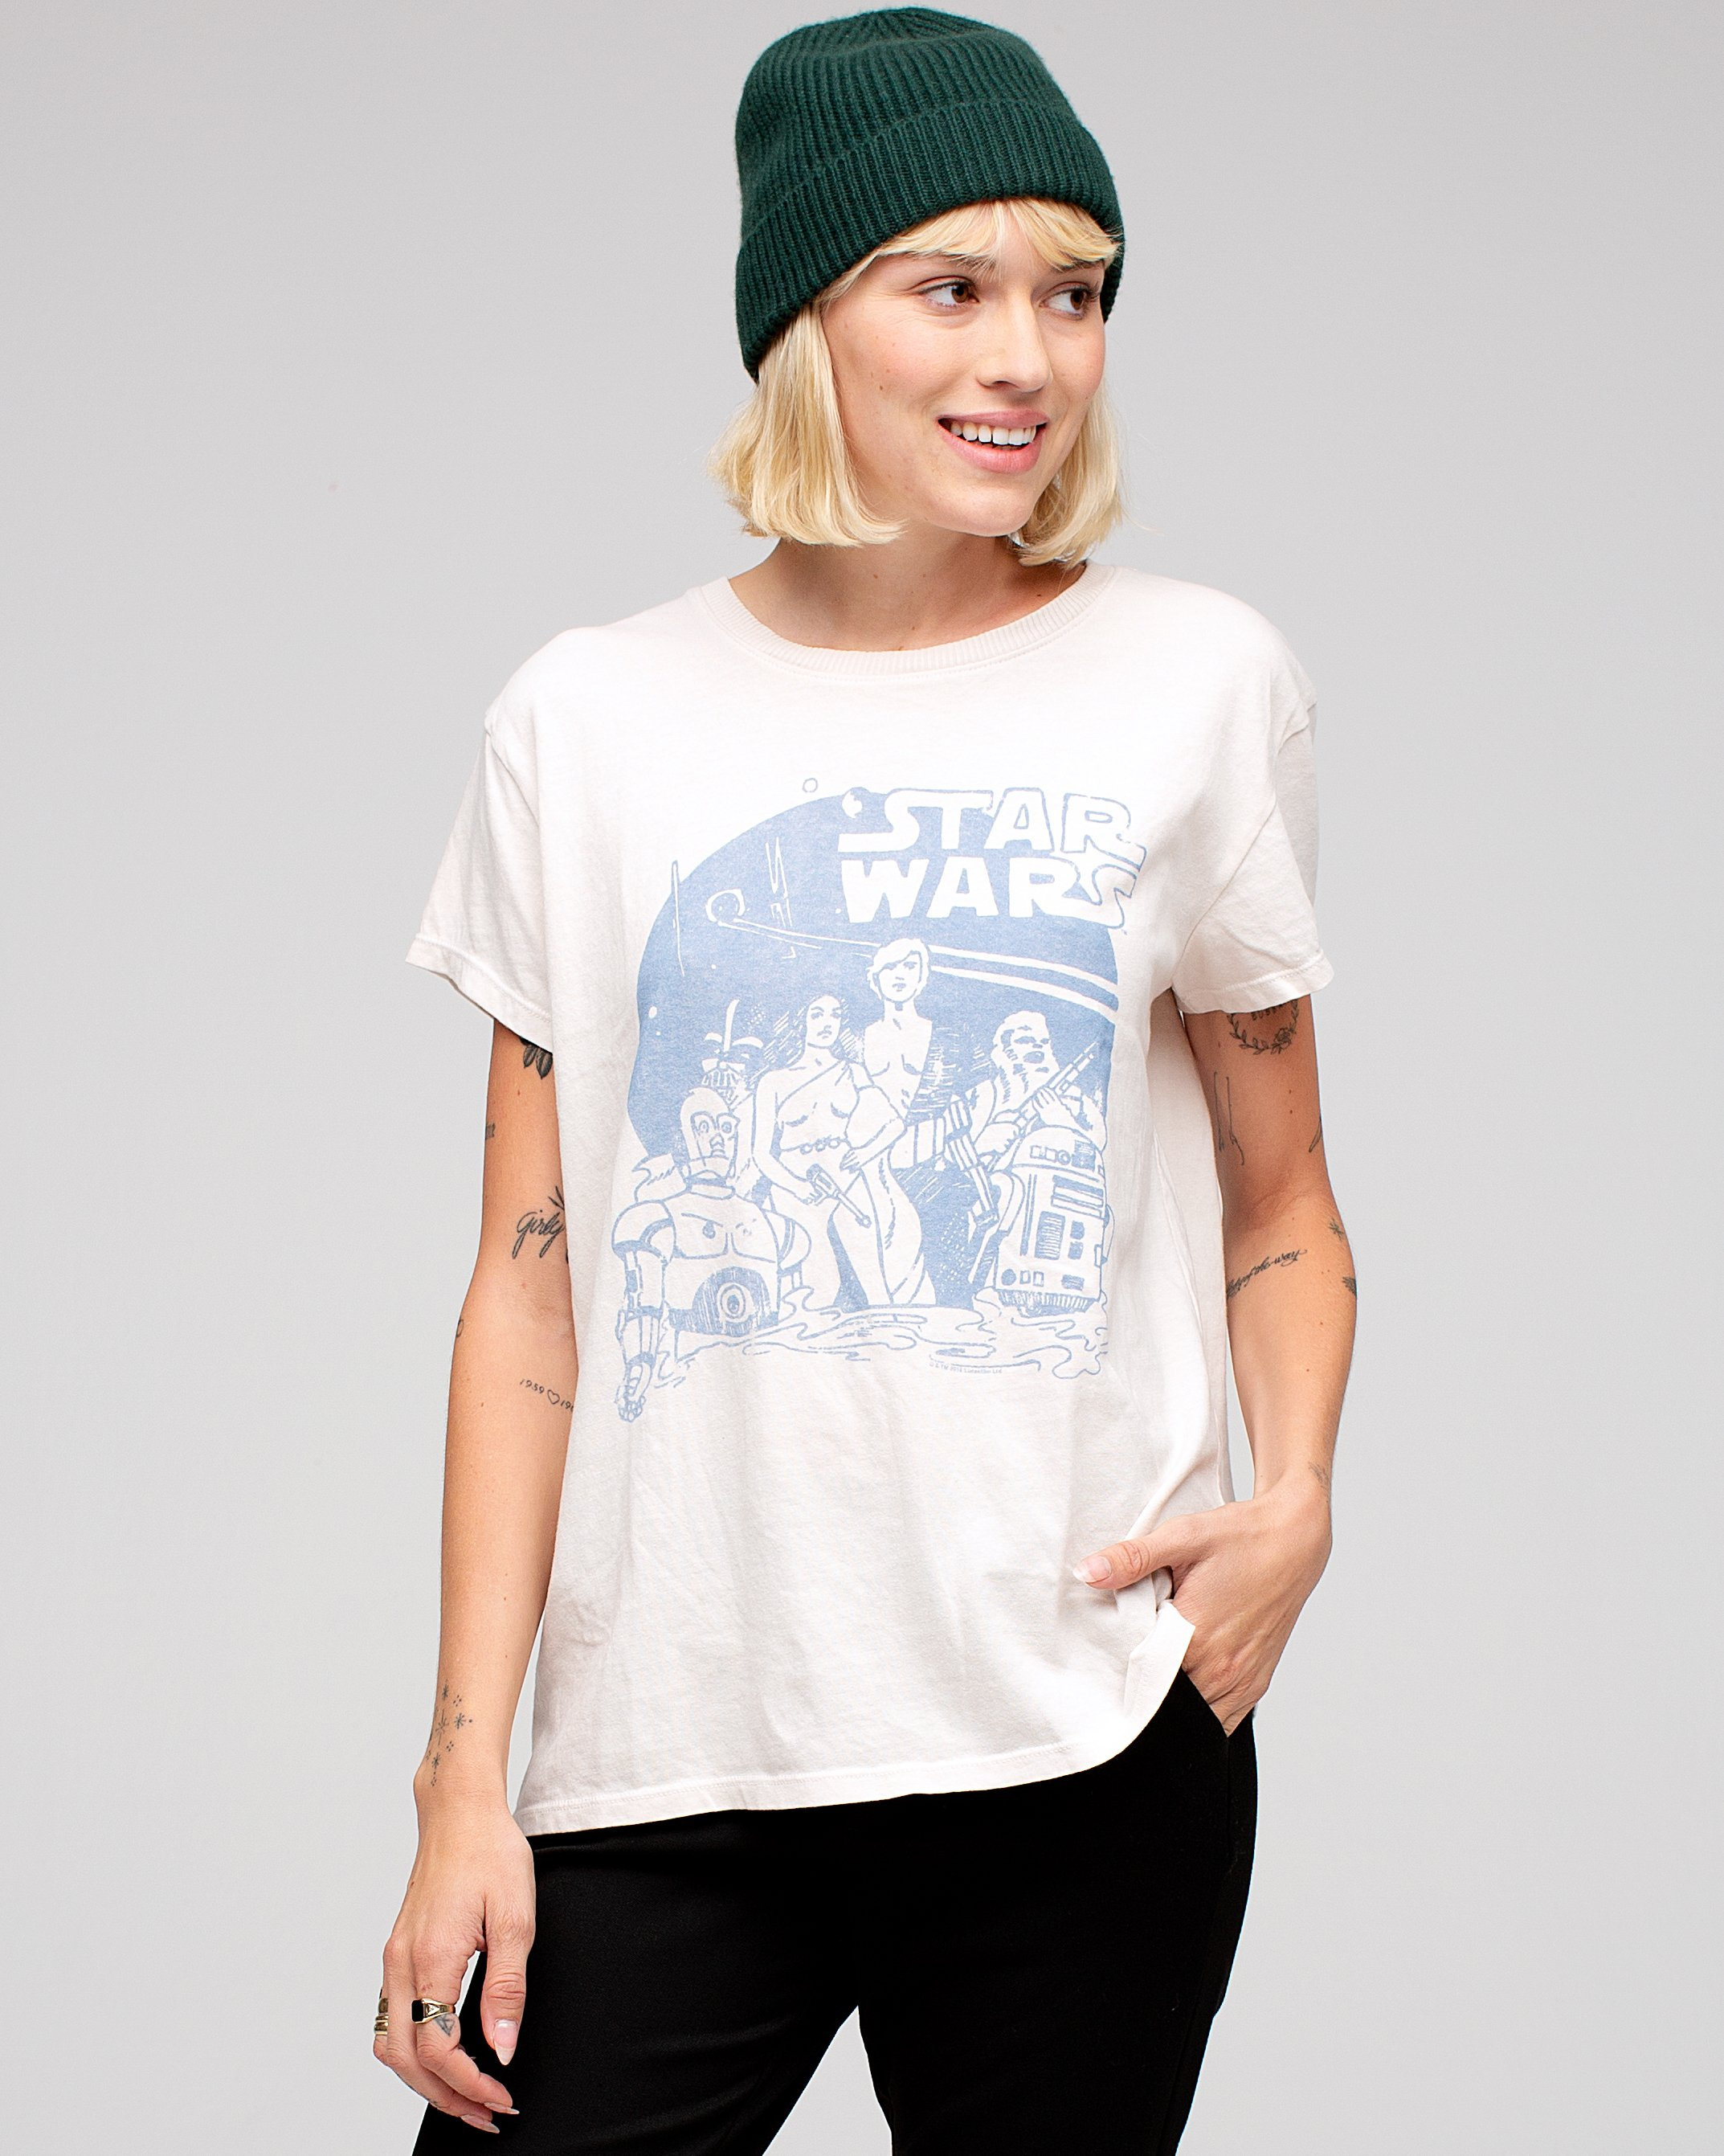 Women's Star Wars Vintage Style T-Shirt by Junk Food Clothing